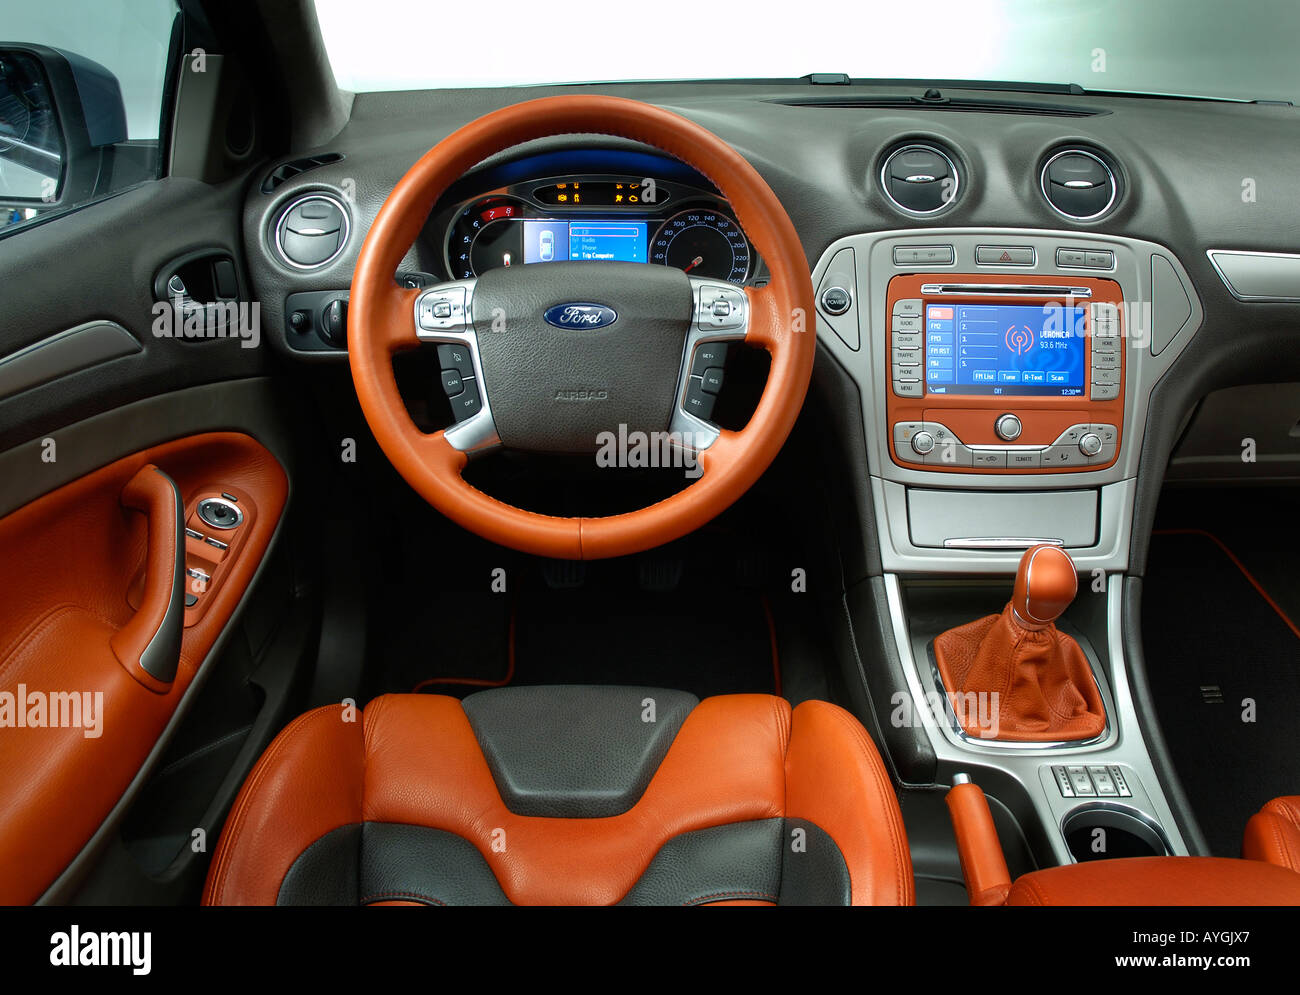 Ford mondeo concept interior 2006 stock photo royalty free image 9773606 alamy - Ford mondeo interior ...